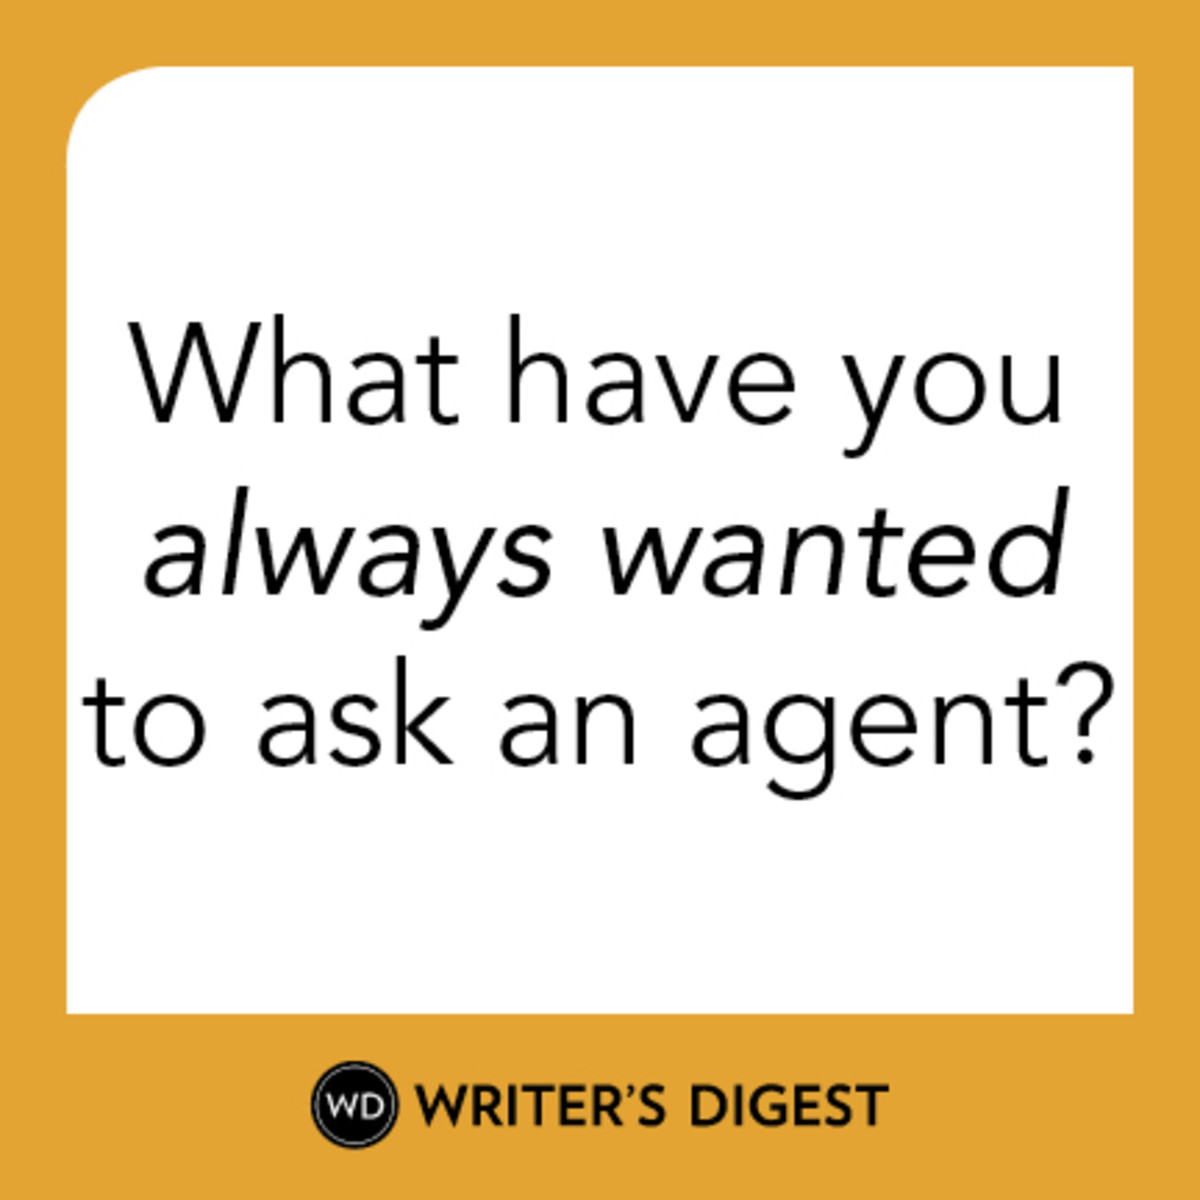 What have you always wanted to ask an agent?